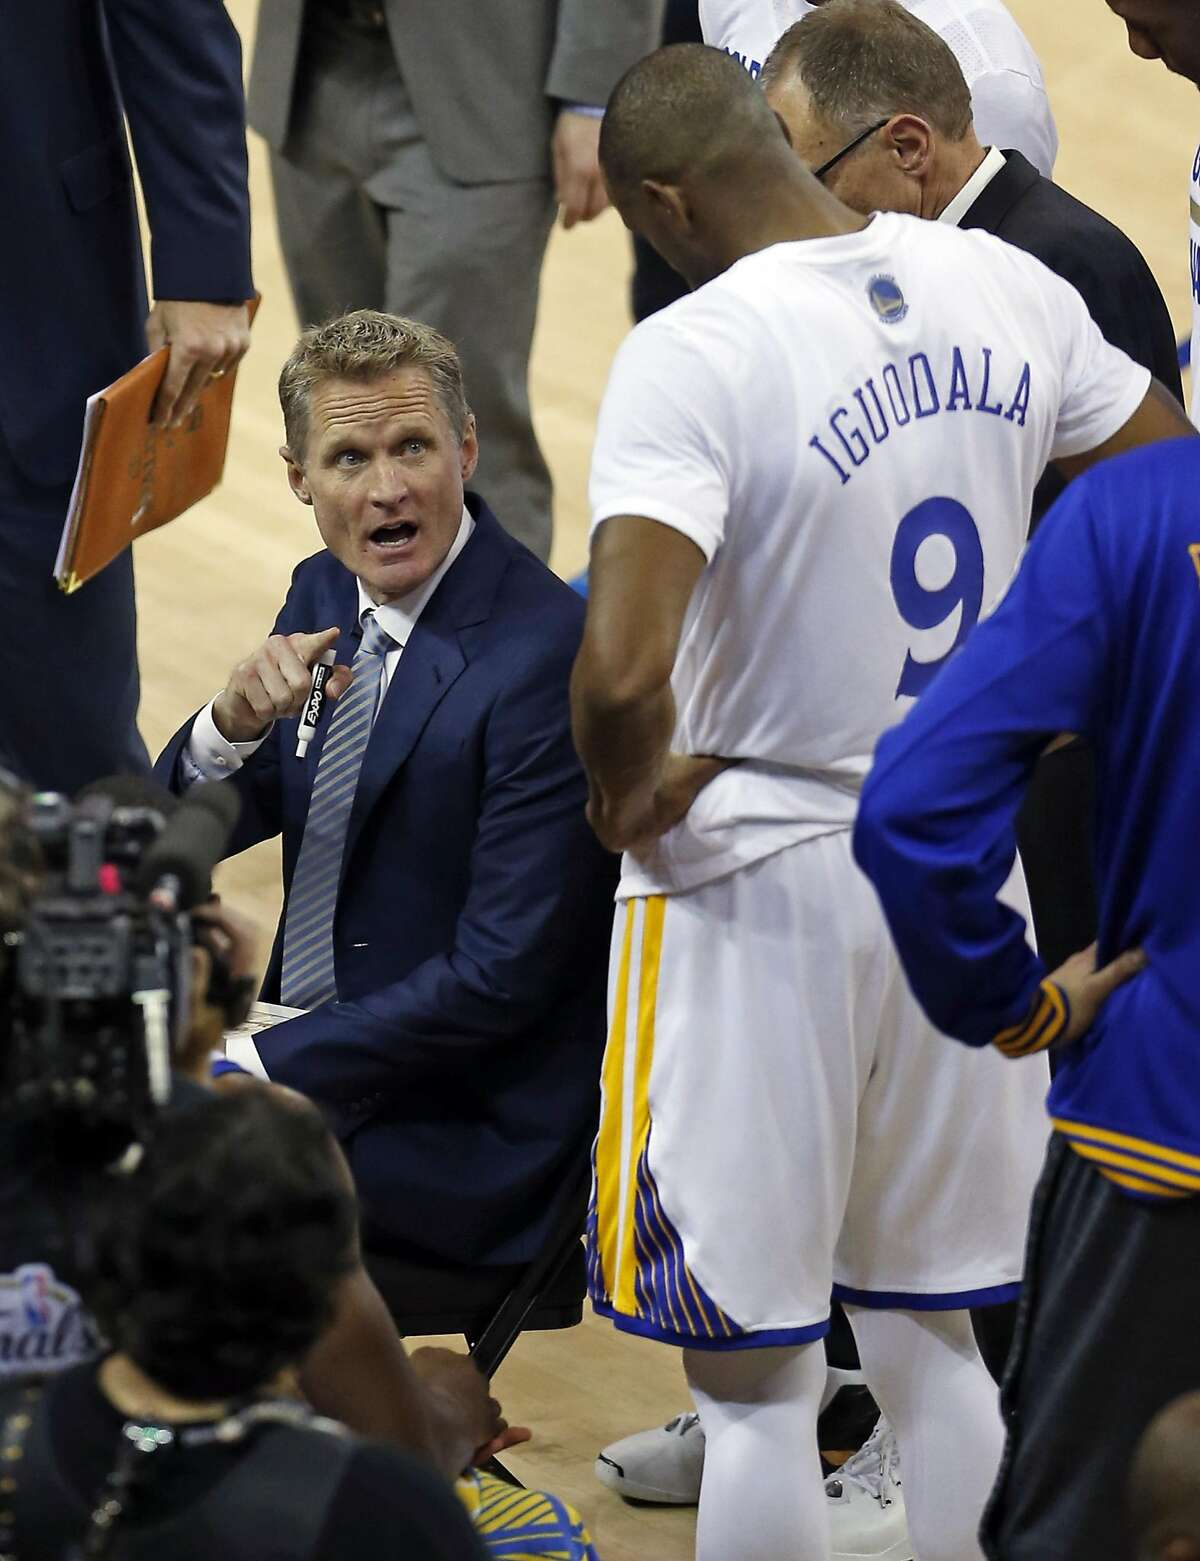 Golden State Warriors' head coach Steve Kerr points to Andre Iguodala during a time out in 3rd quarter of Warriors' 110-77 win over Cleveland Cavaliers in Game 2 of NBA Finals at Oracle Arena in Oakland, Calif., on Sunday, June 5, 2016.